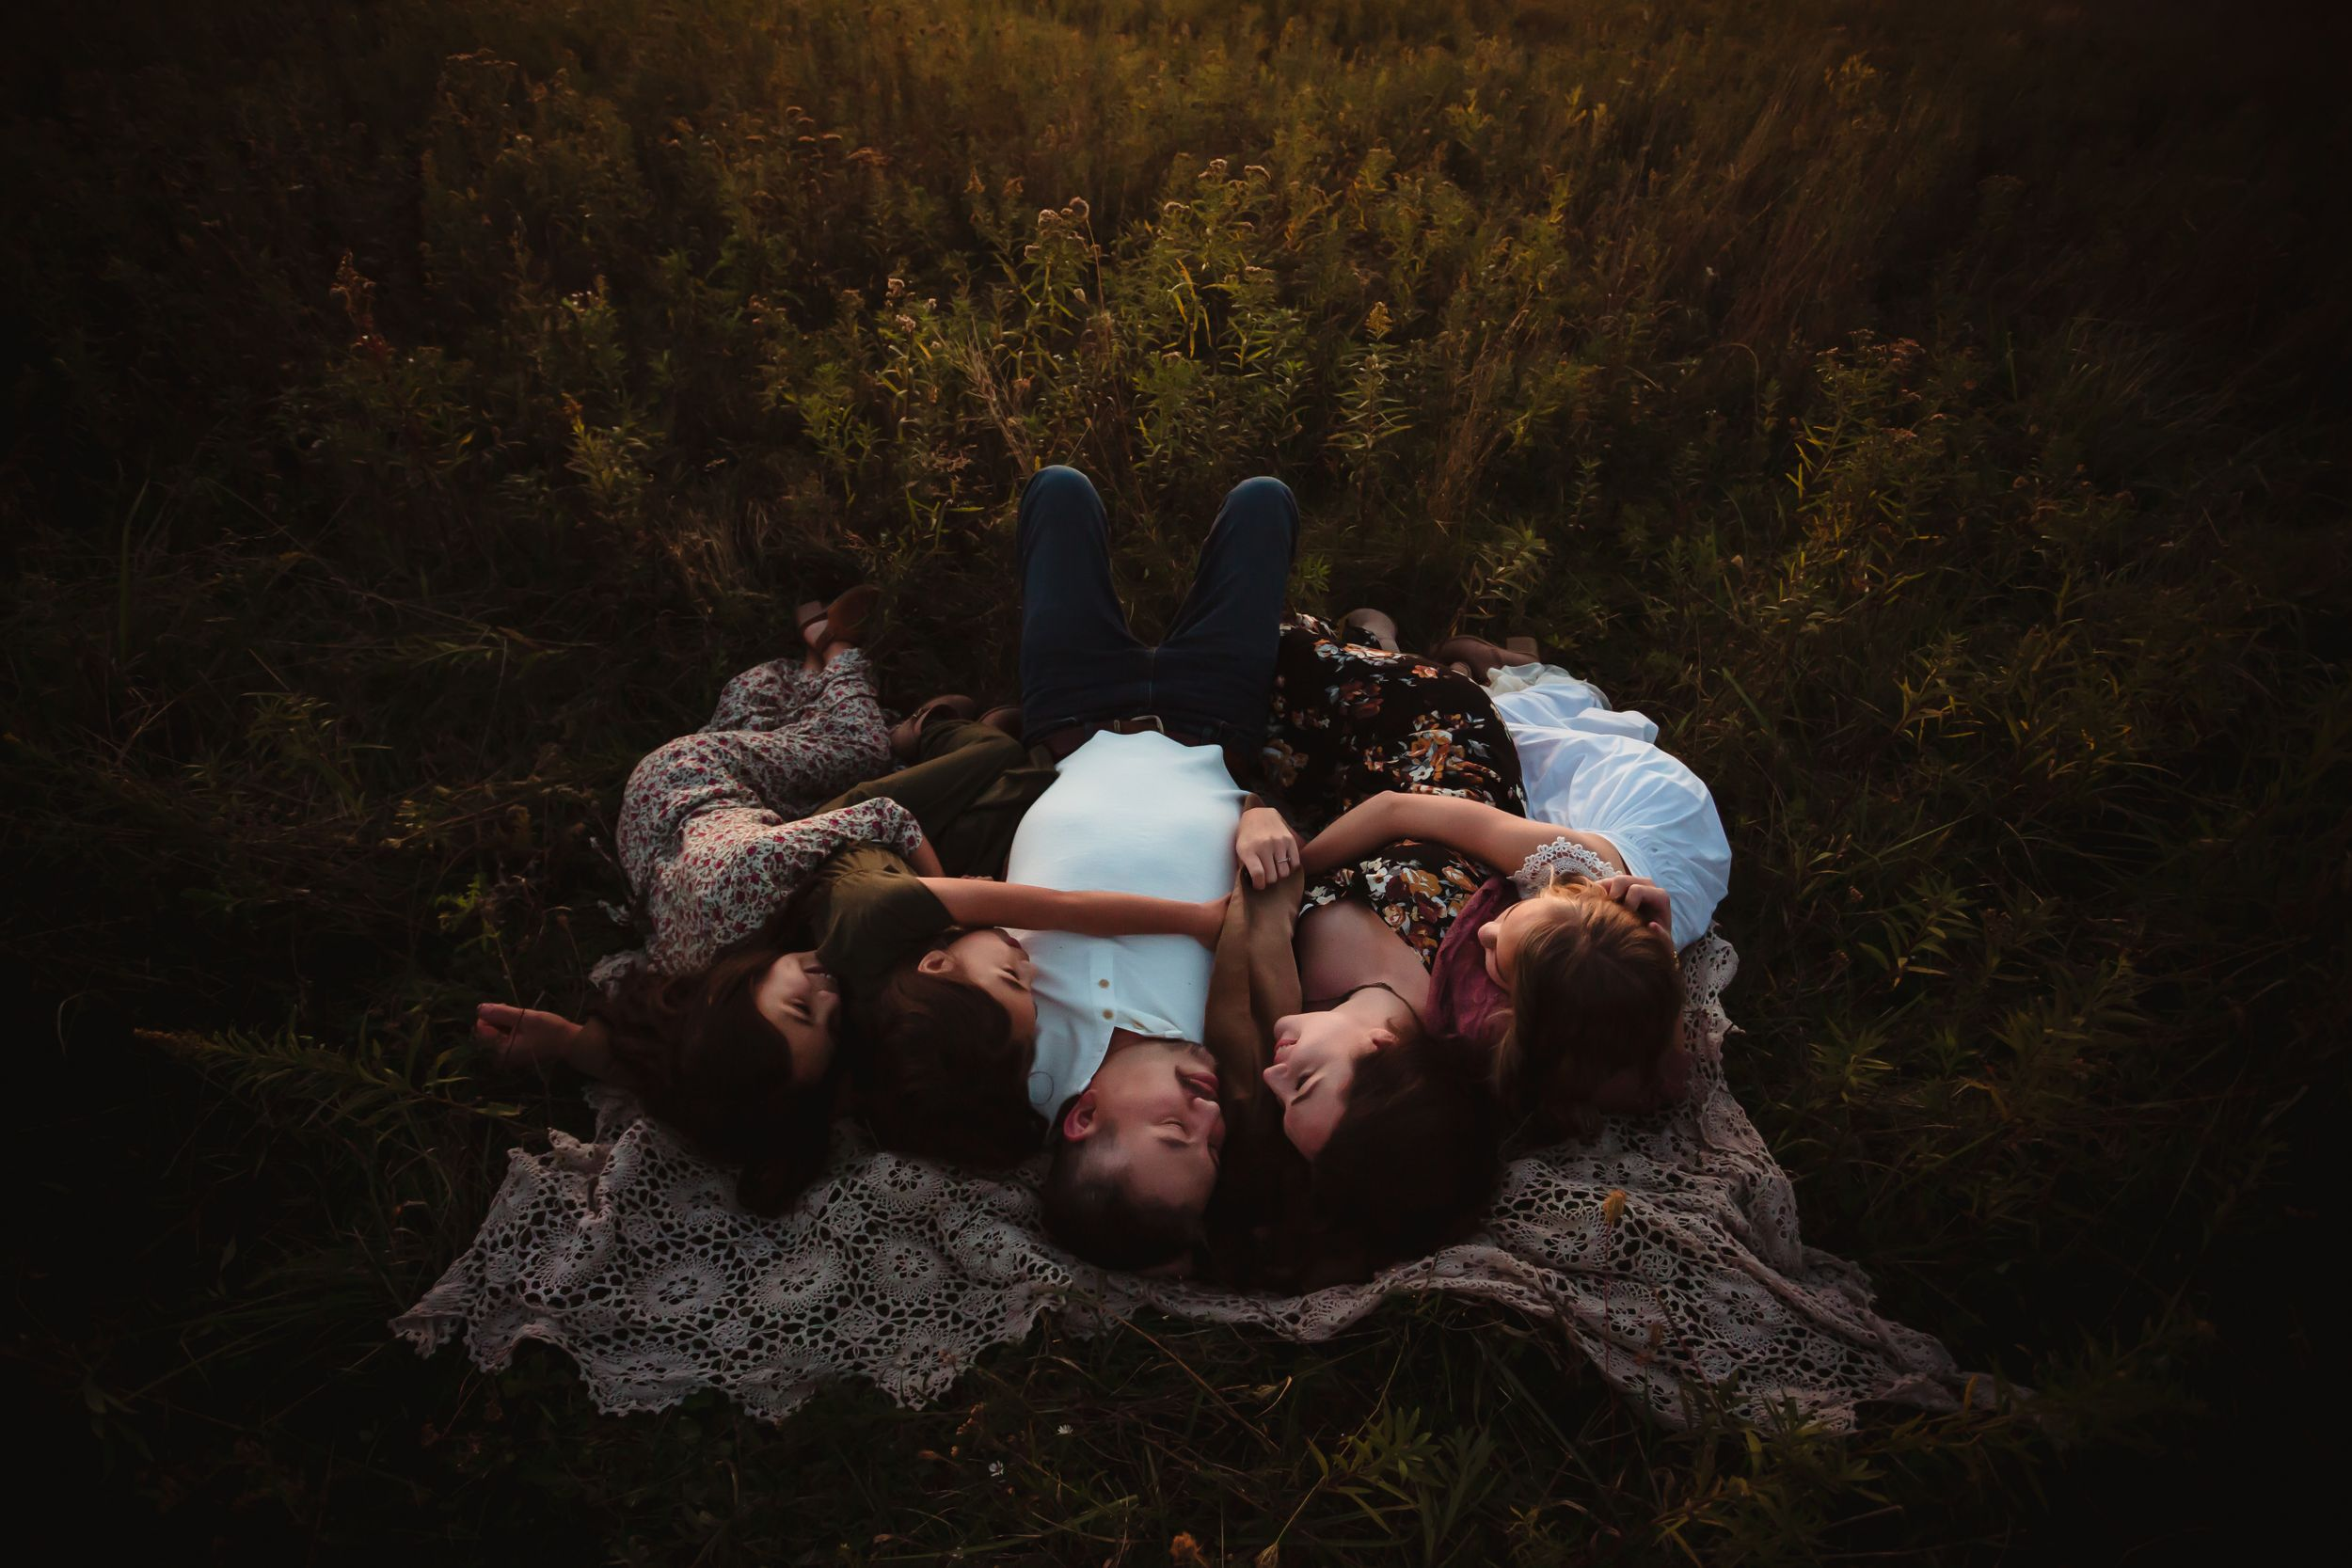 Father, mother, and three daughters lying on a lace blanket in a field embracing each other.